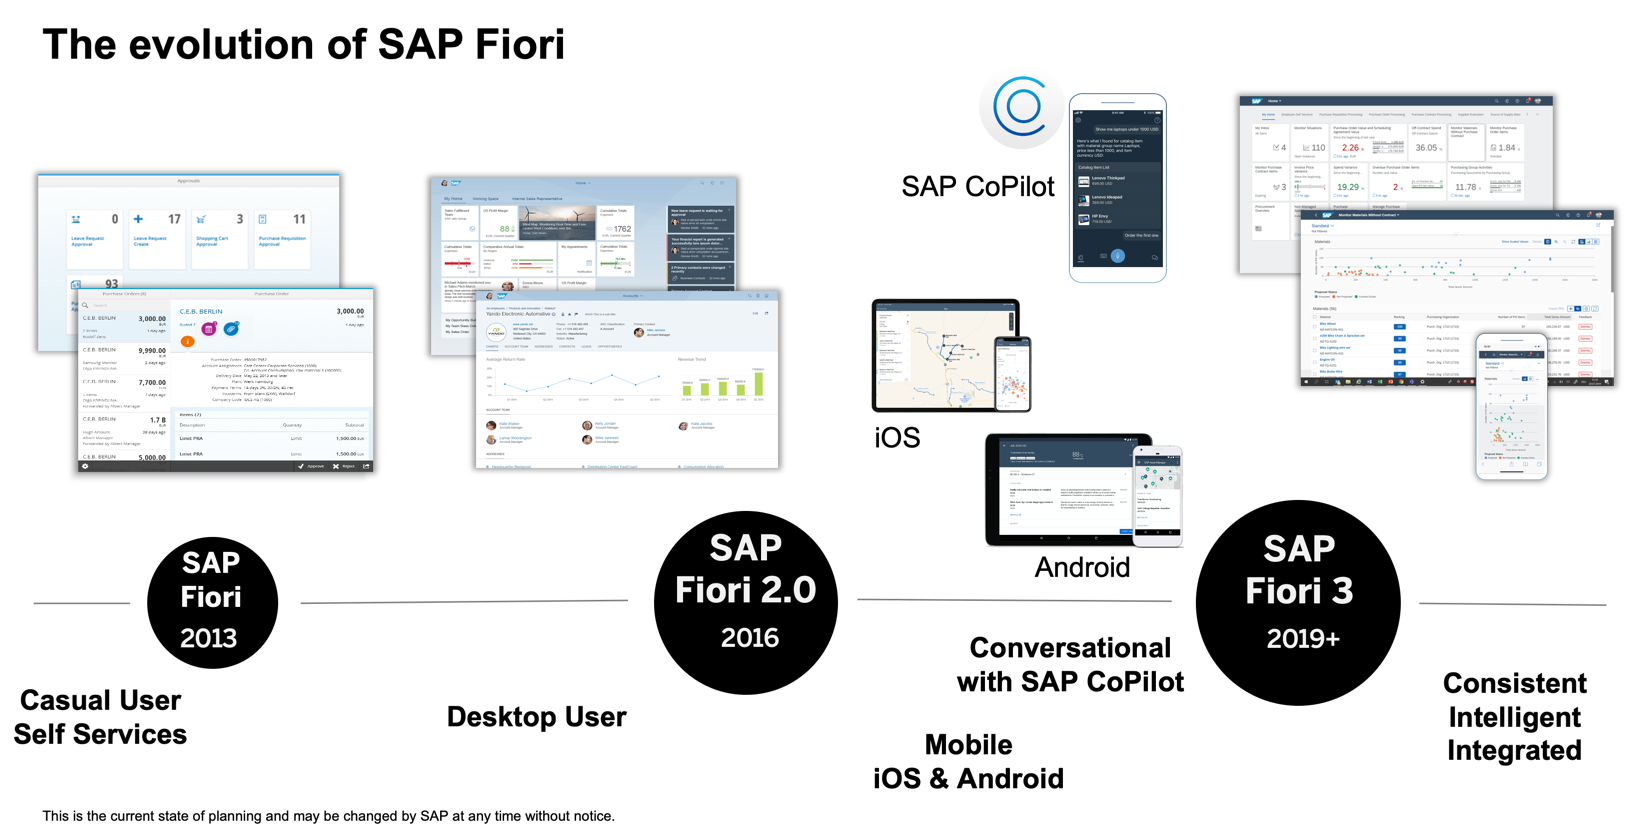 The%20evolution%20of%20SAP%20Fiori